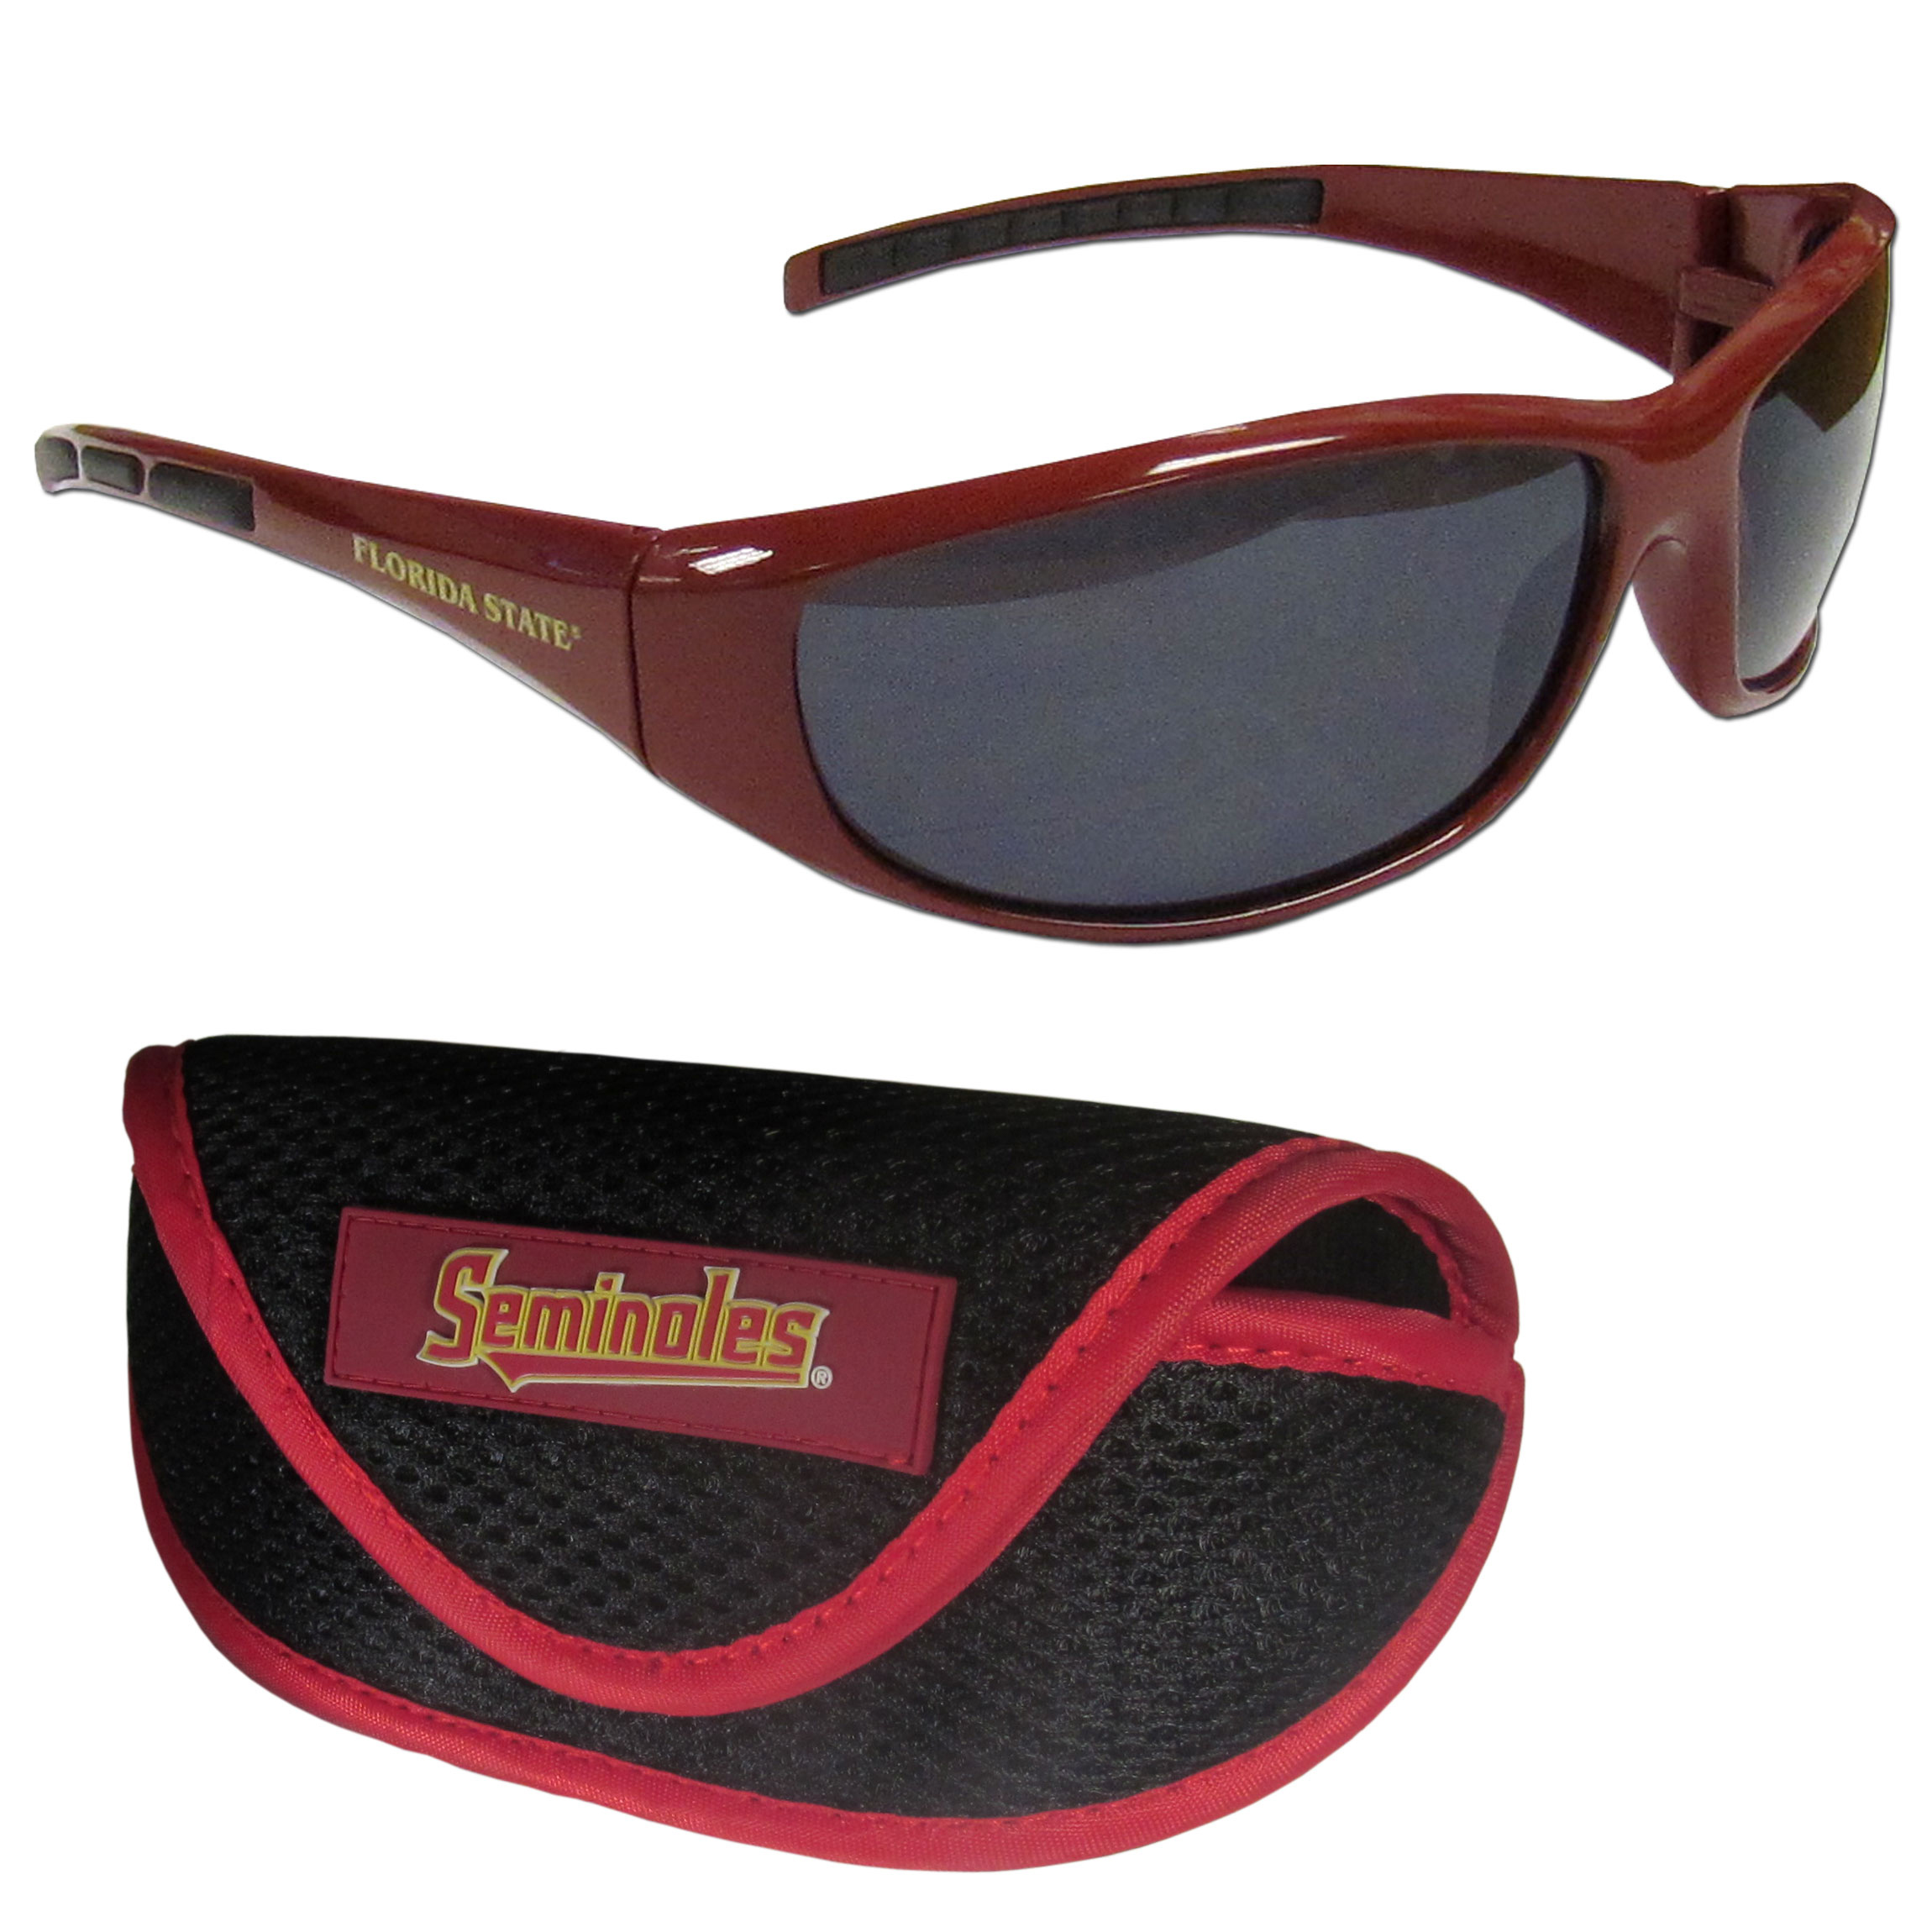 Florida St. Seminoles Wrap Sunglass and Case Set - This great set includes a high quality pair of Florida St. Seminoles wrap sunglasses and soft sport carrying case.